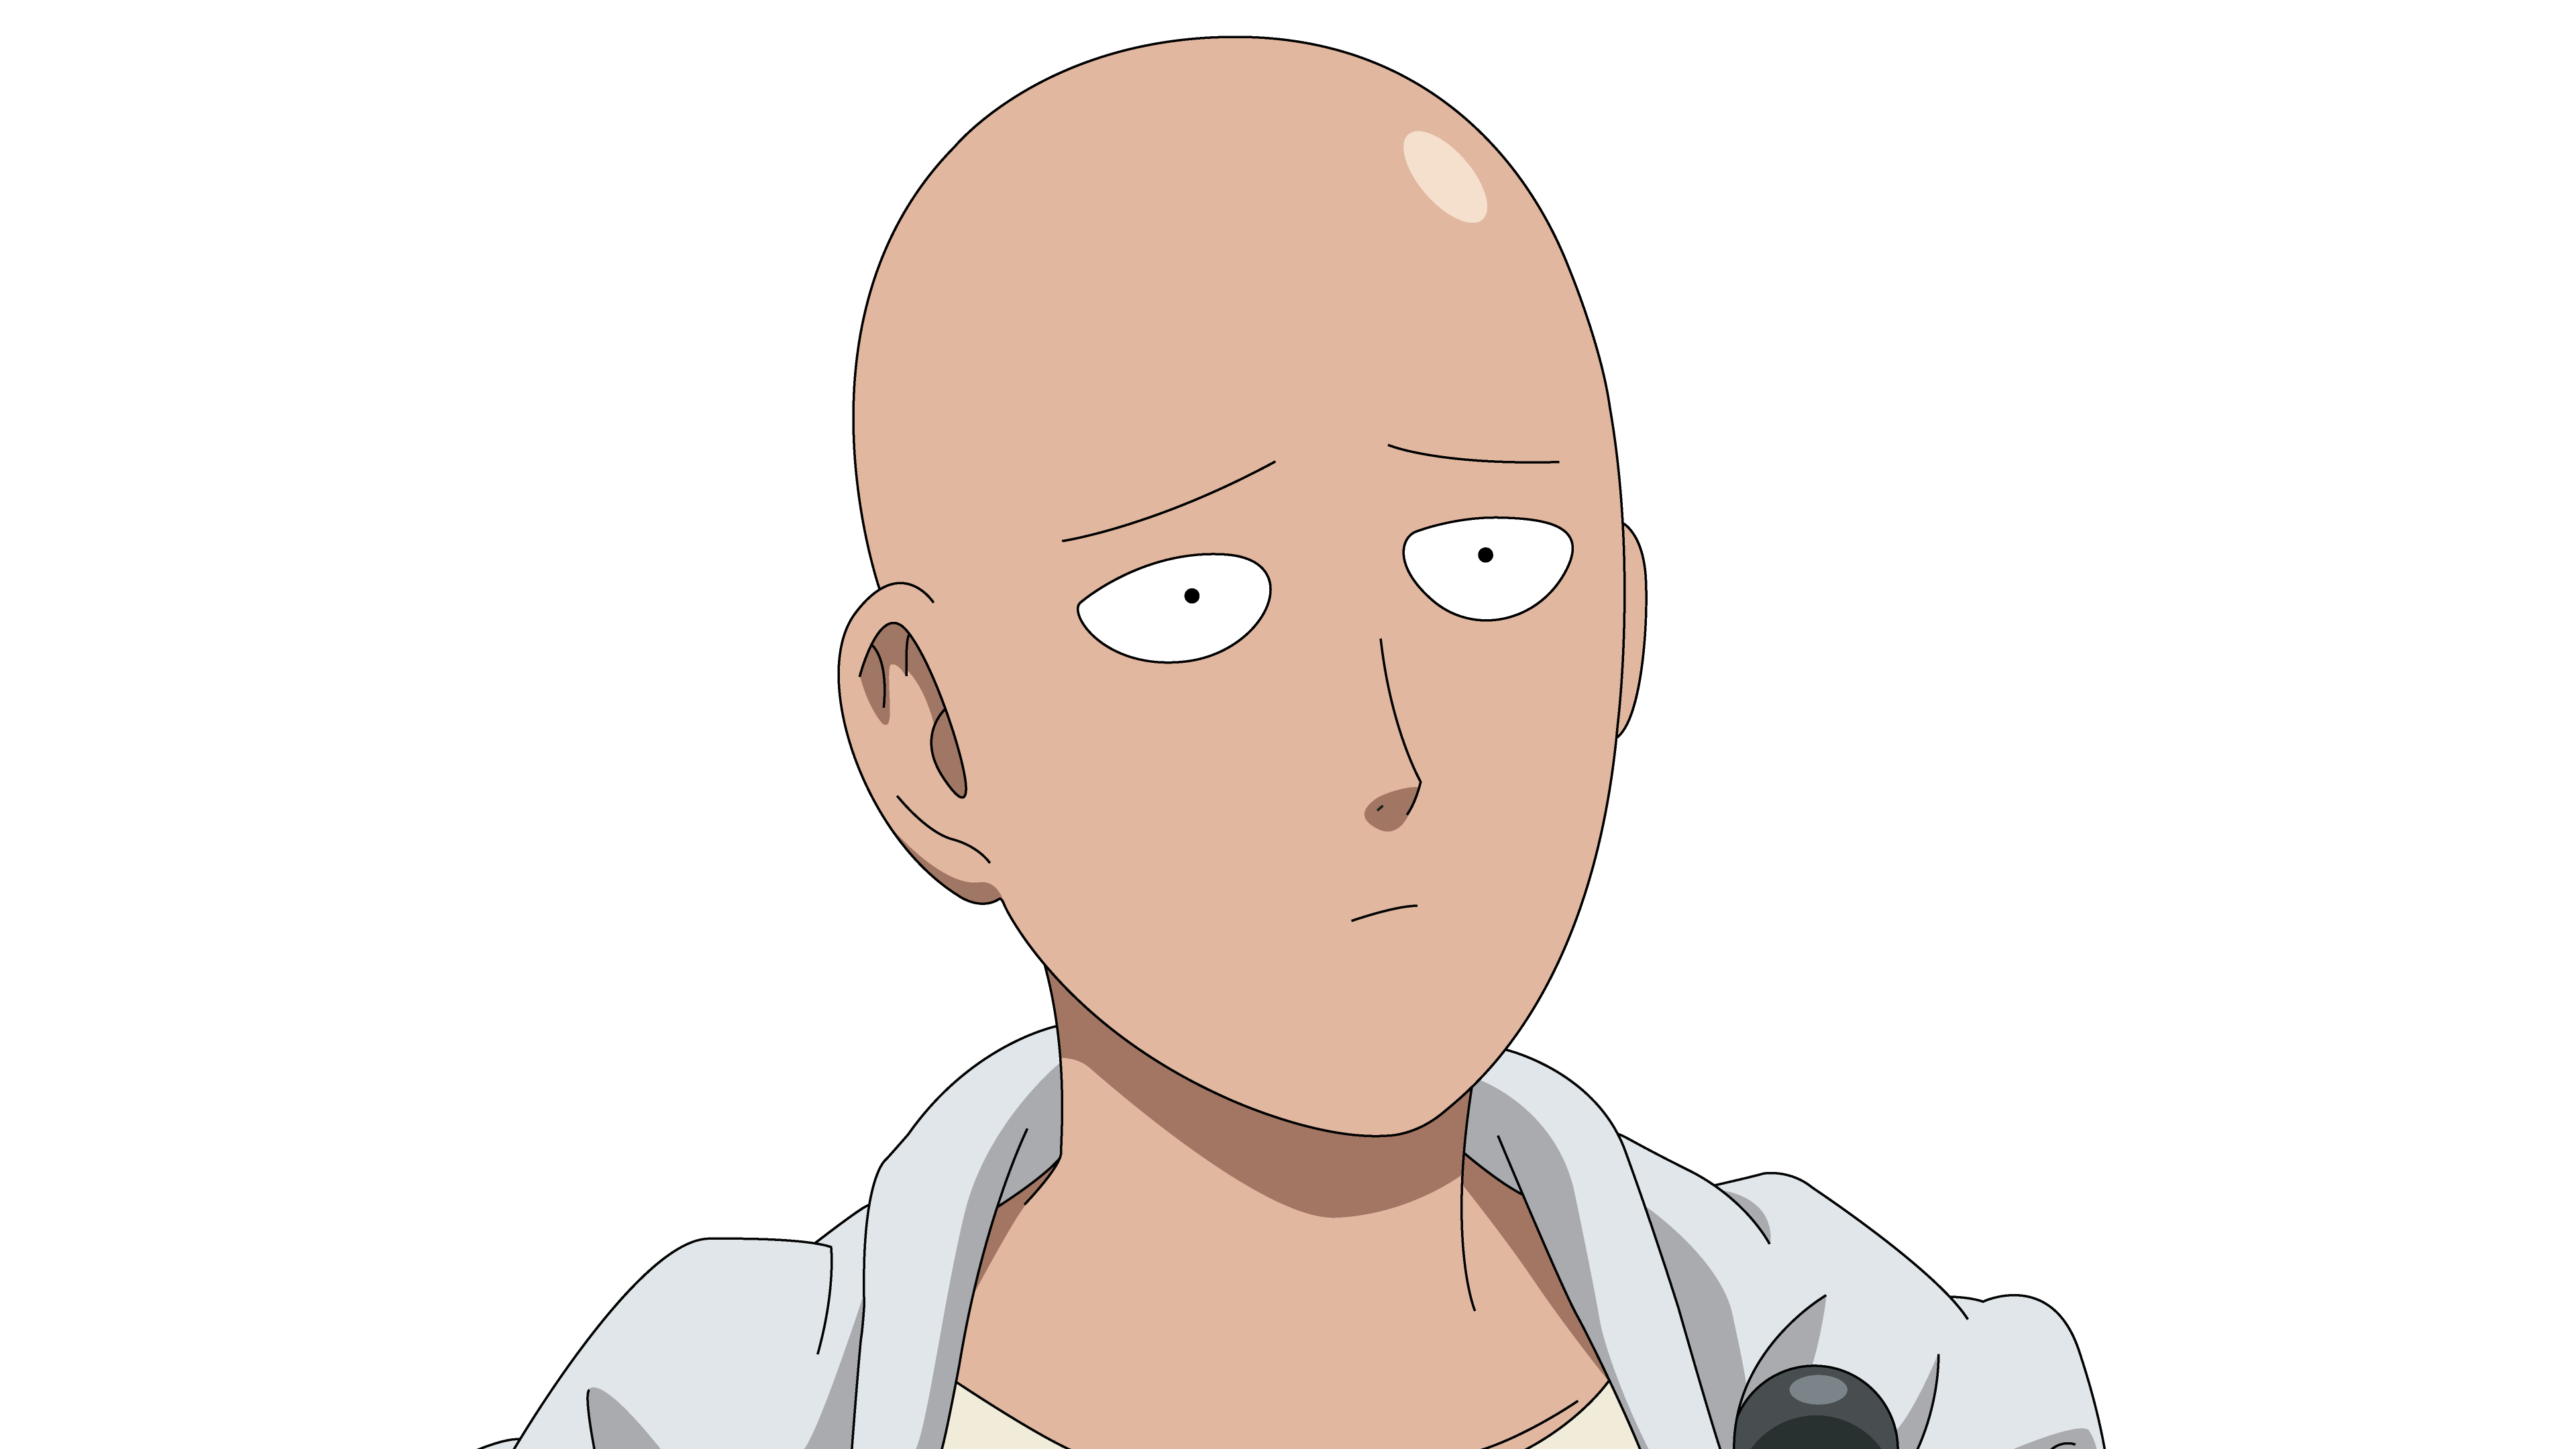 Saitama head png. K ultra hd wallpaper